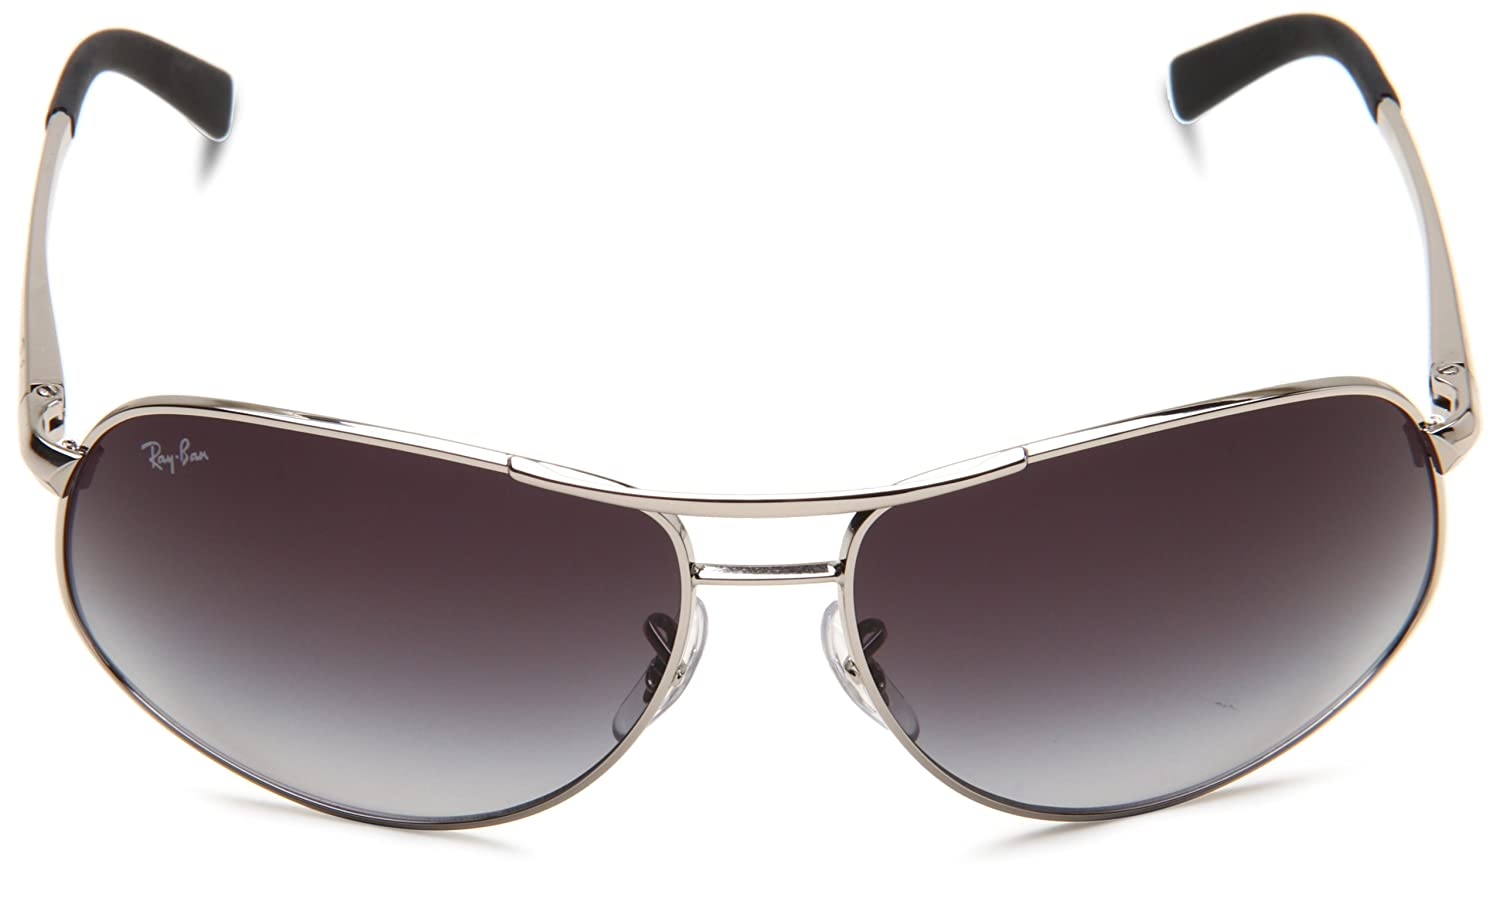 145152330 Ray-Ban Sunglasses (RB 3387 003/8G 67): Ray Ban: Amazon.co.uk: Clothing